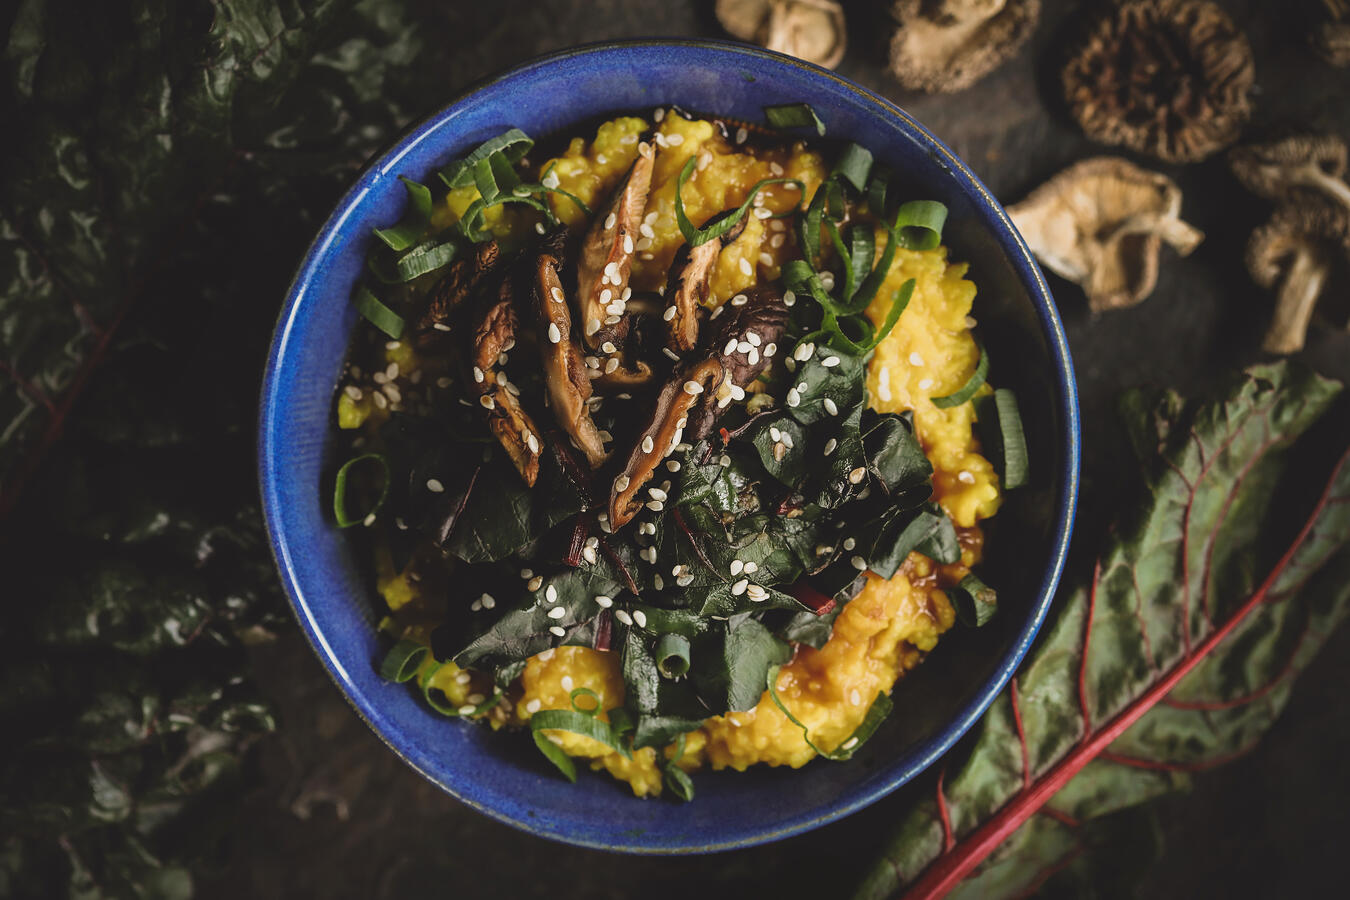 Golden congee in a vibrant blue bowl with sliced mushrooms and greens- garnished with sesame seeds.